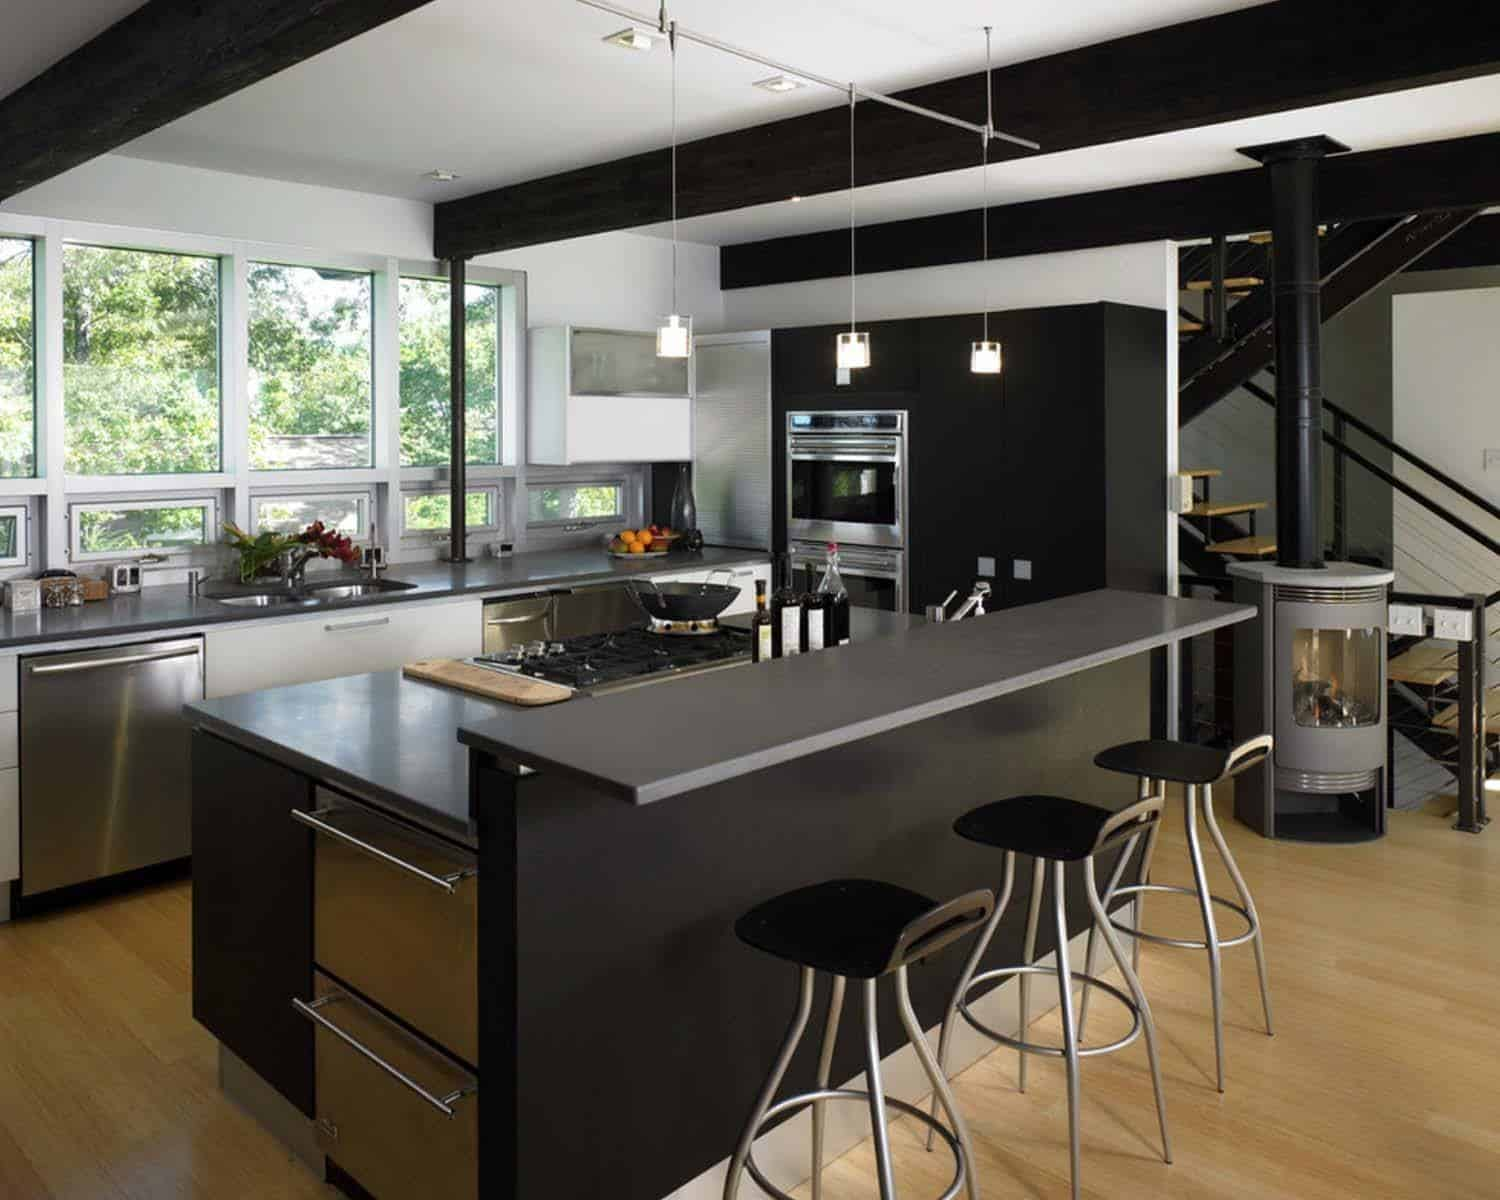 Dramatic Black Kitchen Ideas-10-1 Kindesign